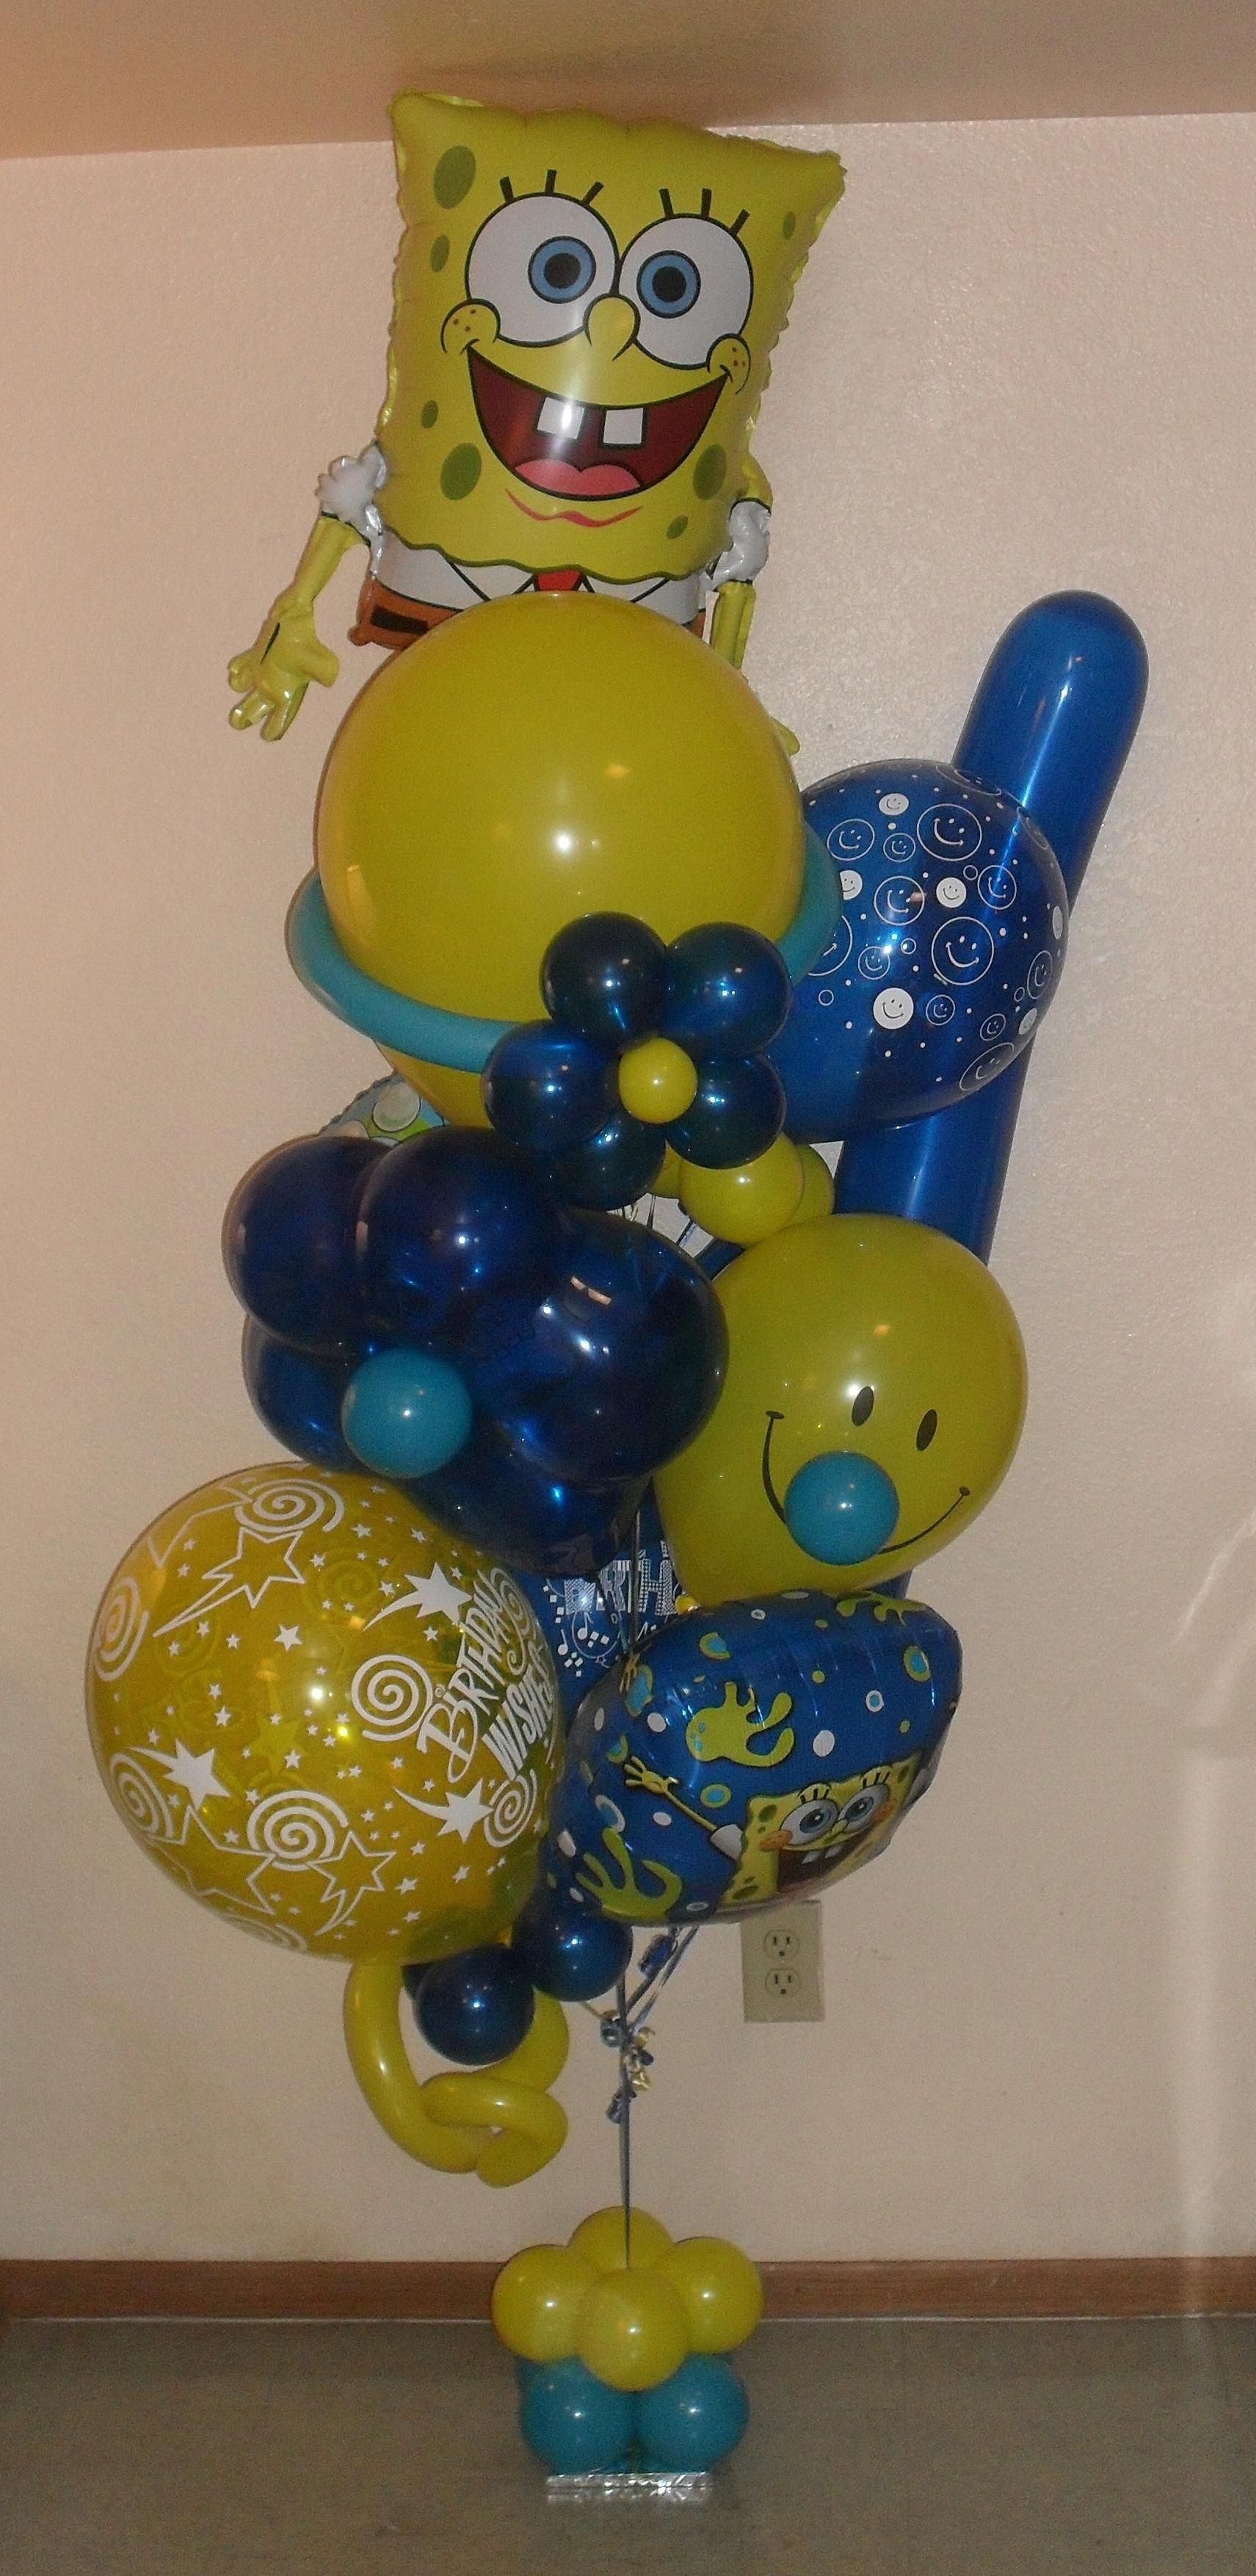 Happy Birthday From Spongebob Small Balloon Bouquet 83